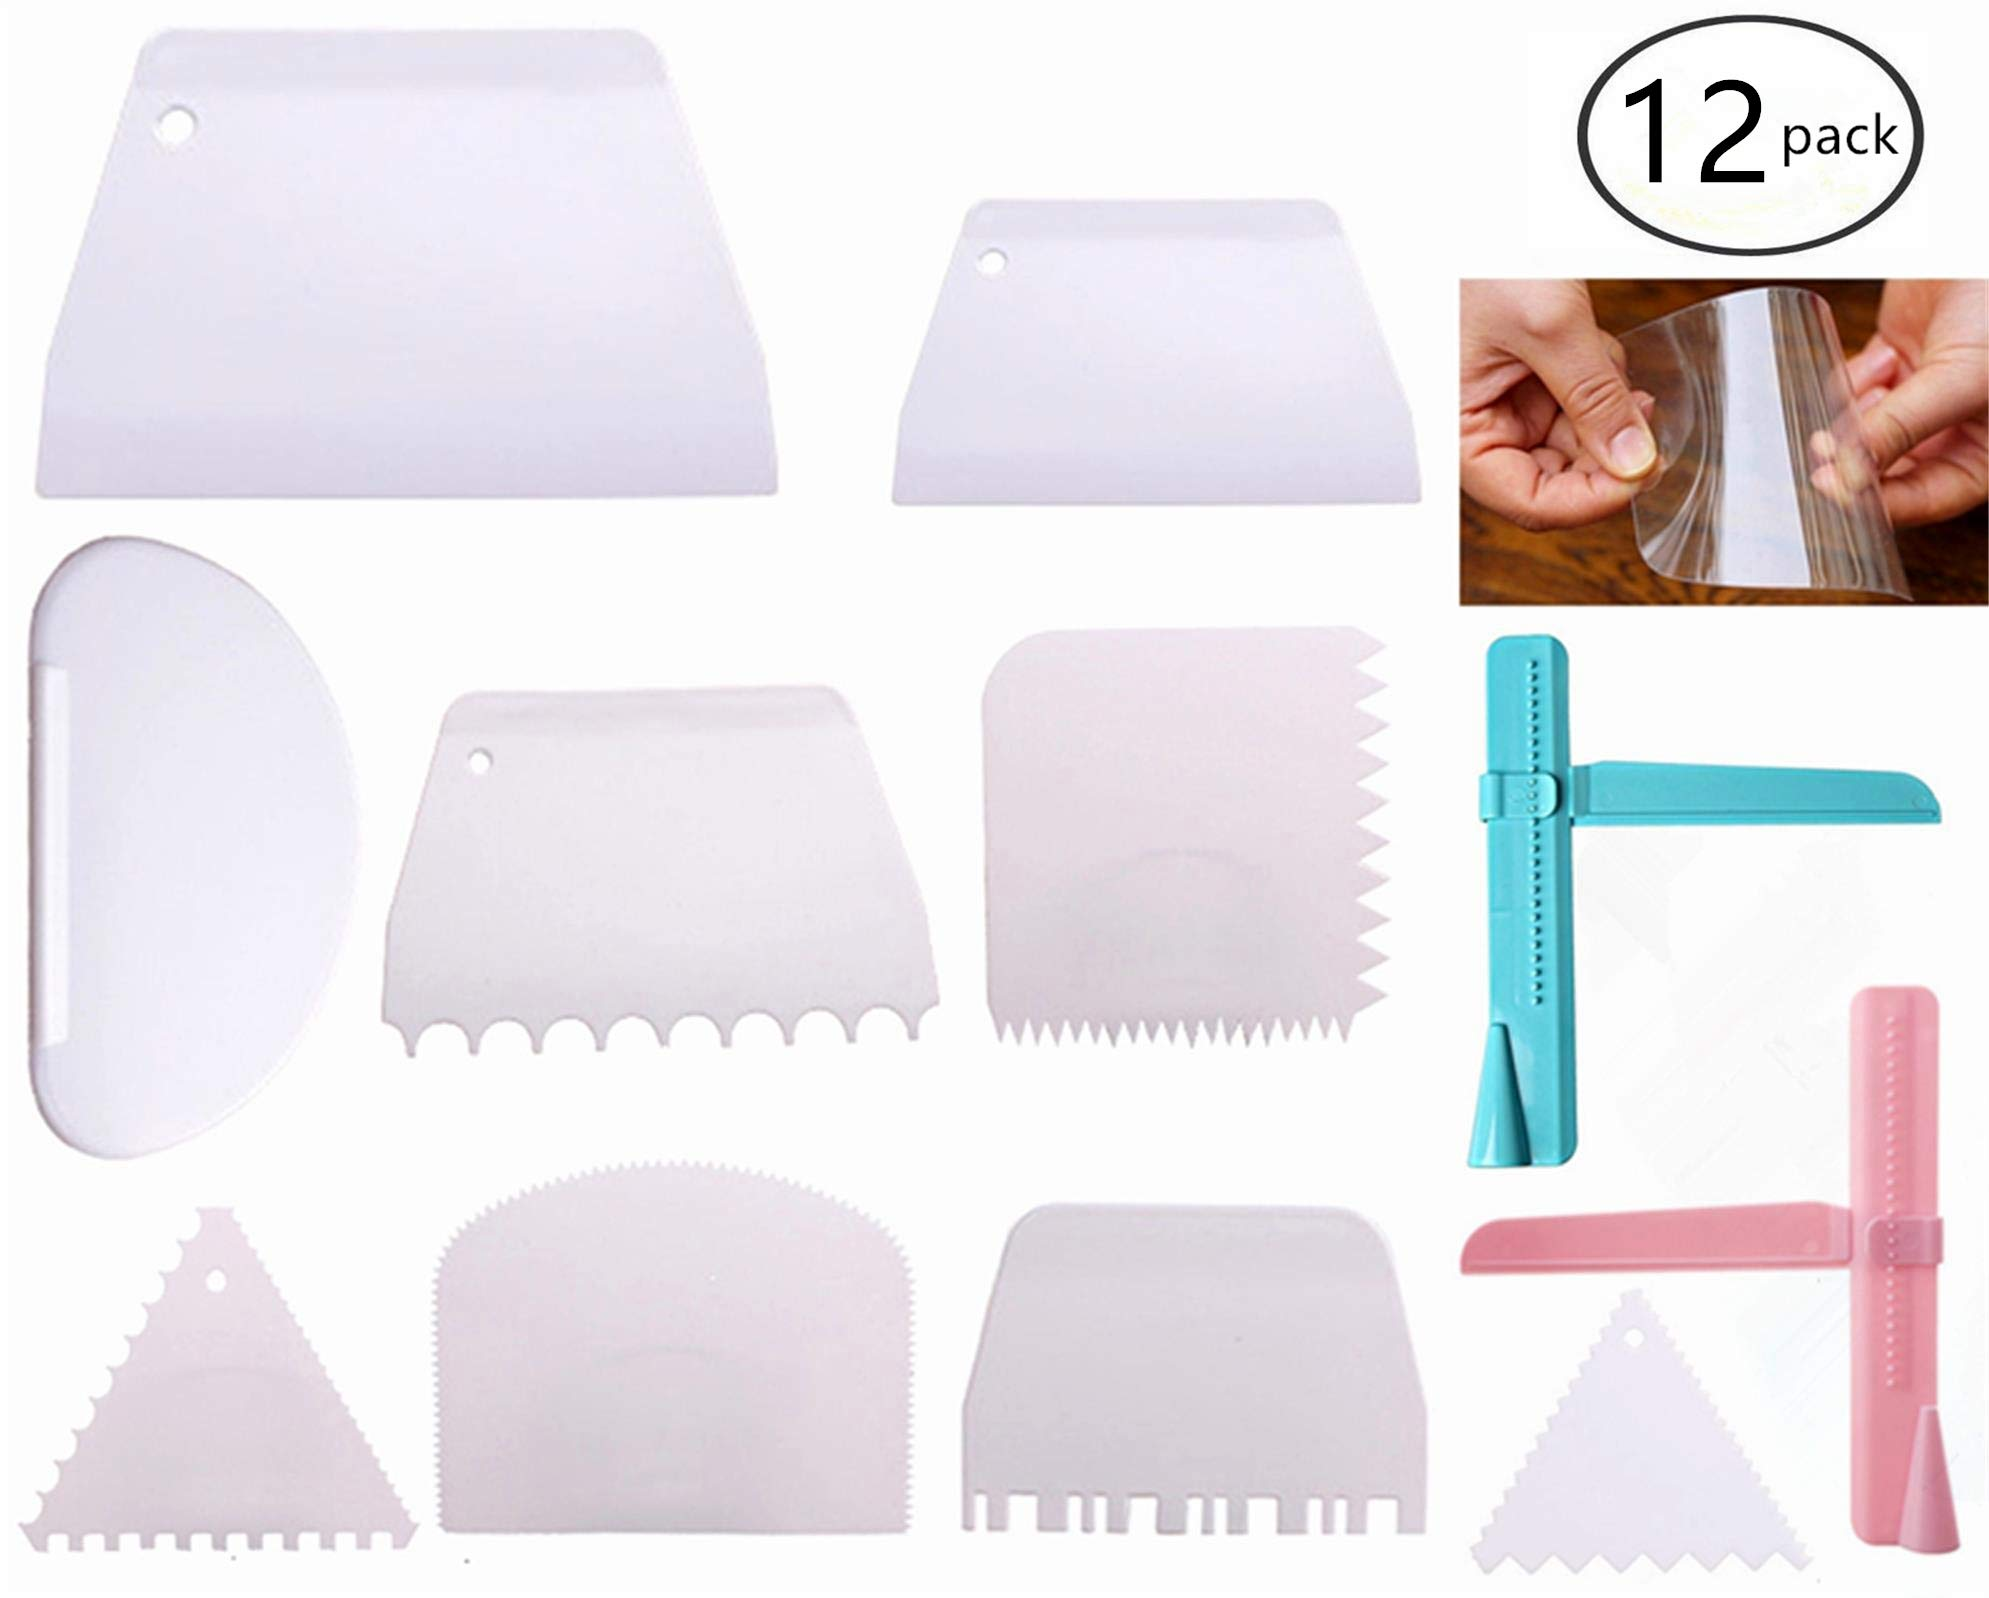 stbeyond 12 Pcs Cake Scraper Smoother Set - 2pcs Adjustable Cake Smoother Polisher with 10pcs Different Dough Scraper Tools for Smoothing Cakes Buttercream Edge